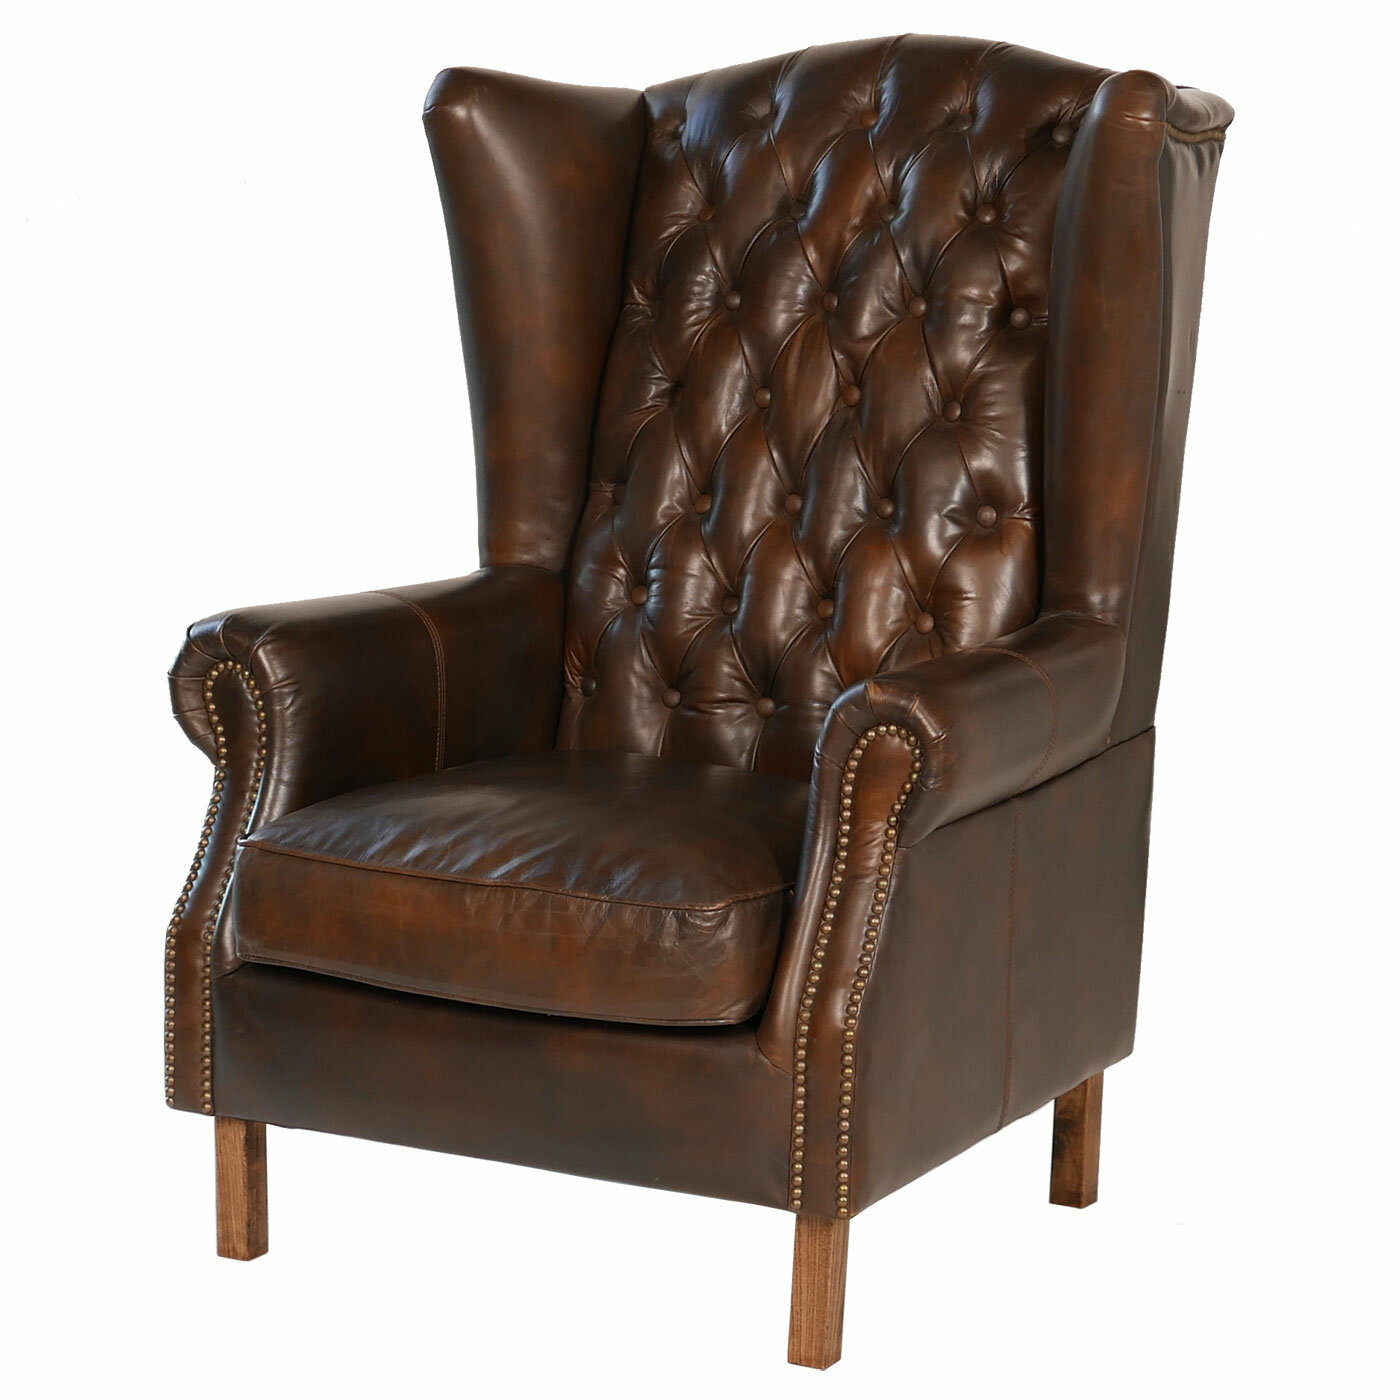 Joseph Allen Old World Antique Leather Wingback Chair | Wayfair